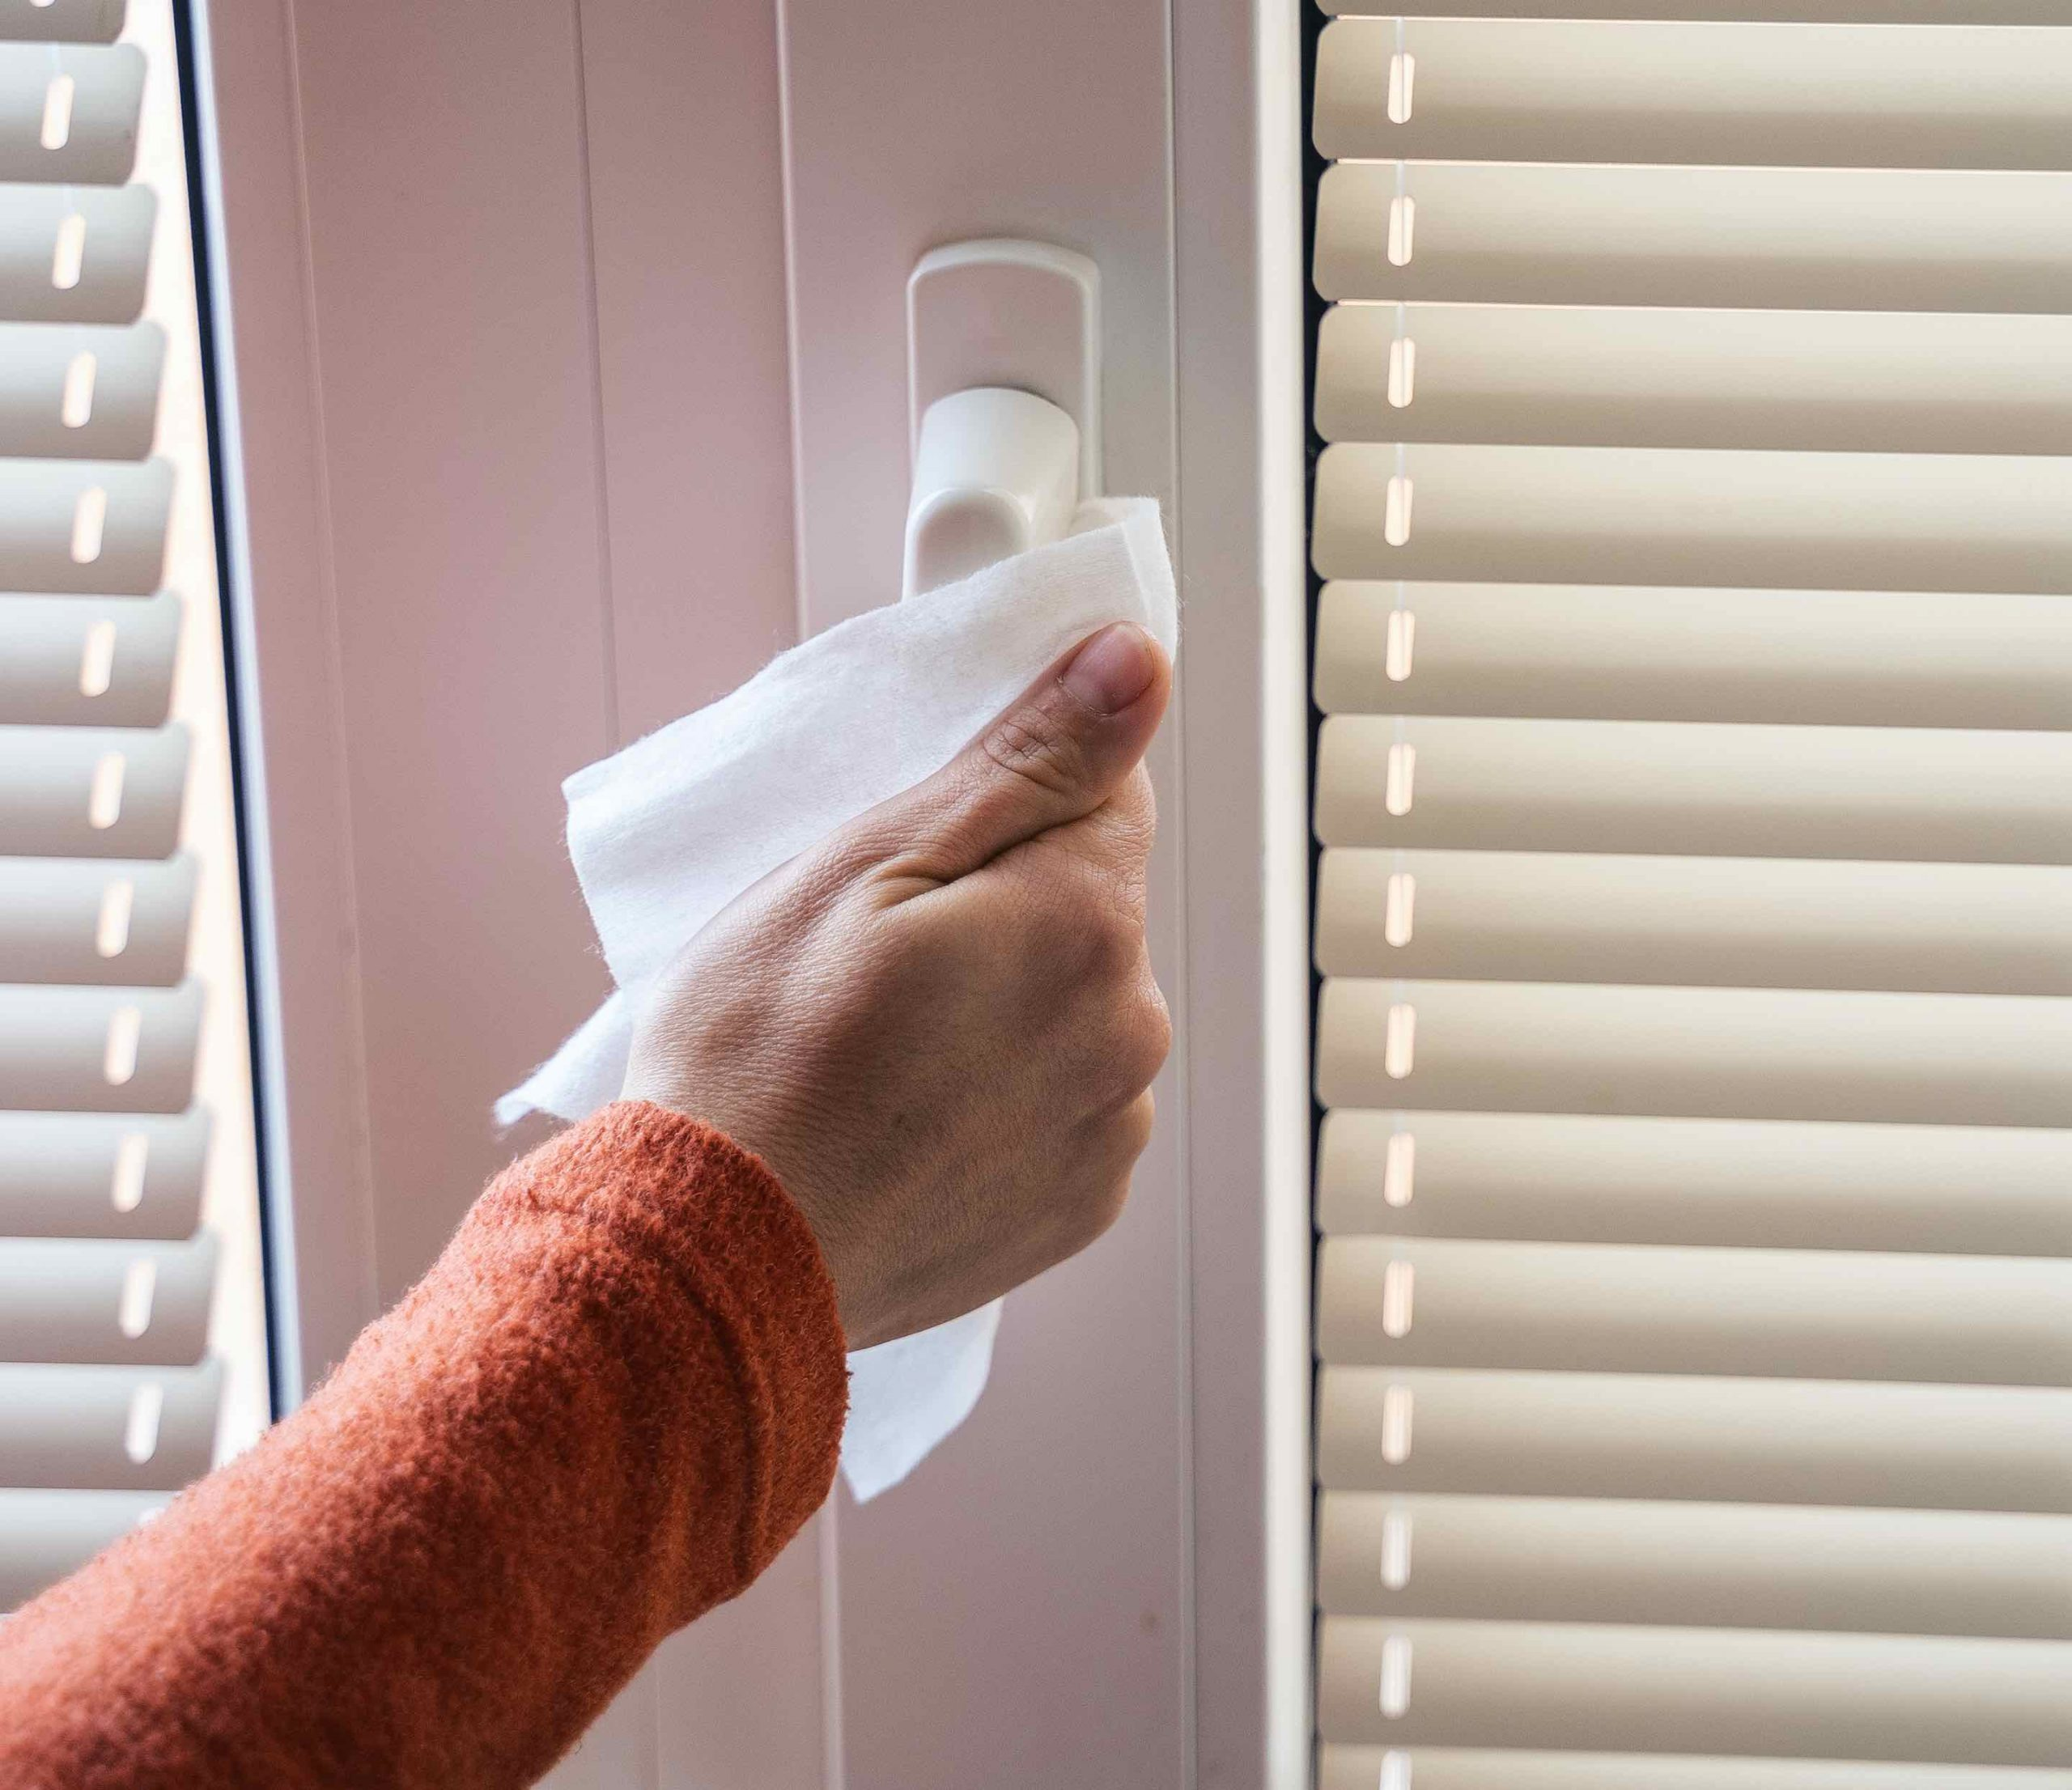 Woman disinfecting door handle with Non-Toxic Cleaning Wipes